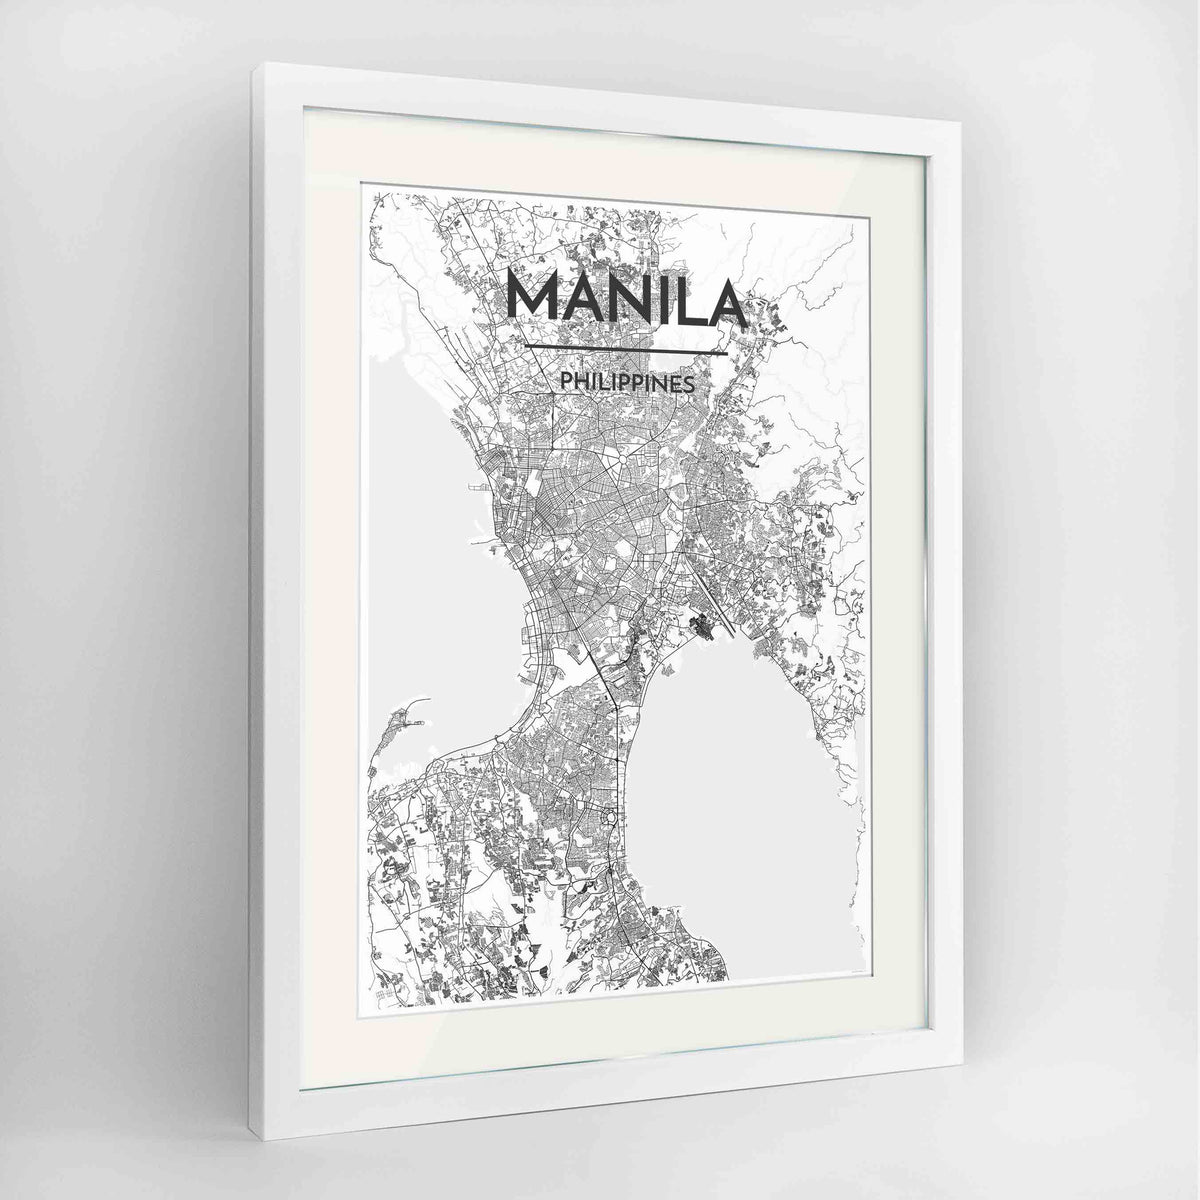 "Framed Manila Map Art Print 24x36"" Contemporary White frame Point Two Design Group"